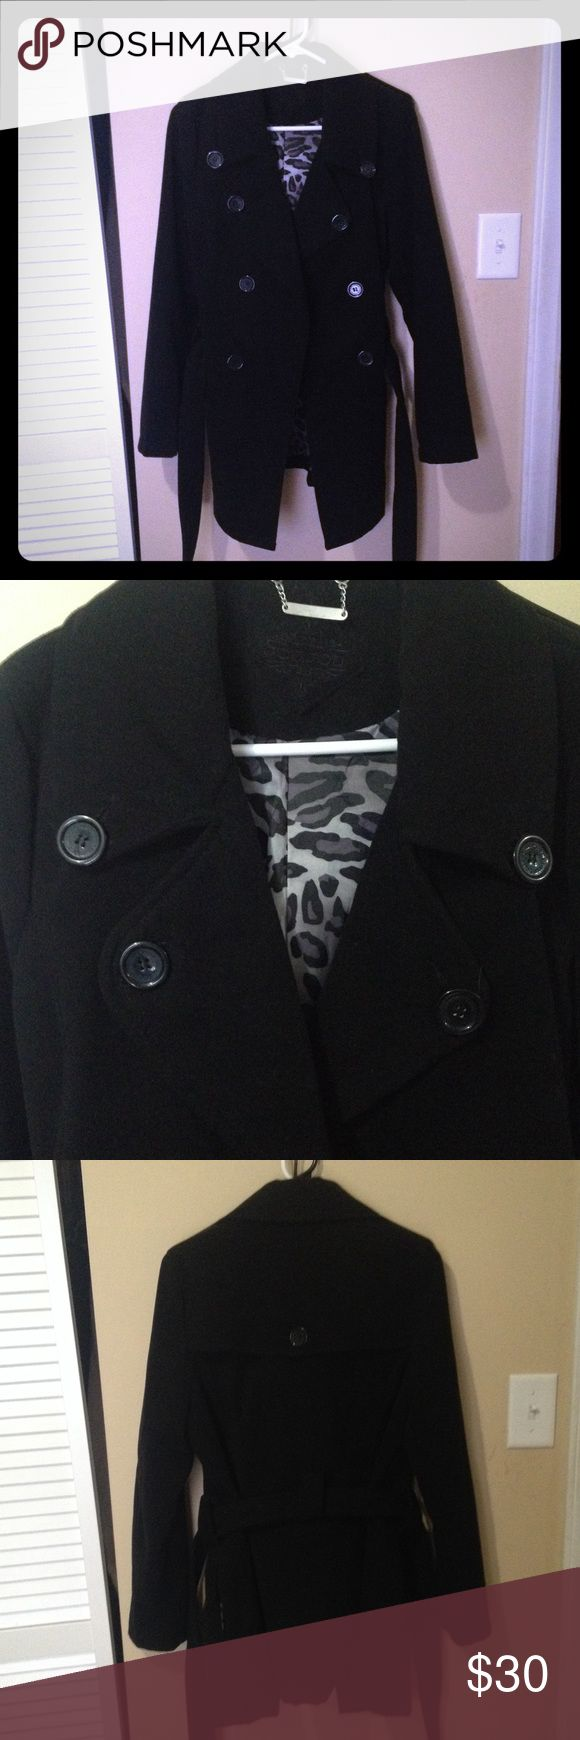 Black pea coat Black Pea Coat in great condition. Super cute cheetah print on the inside. Maybe was worn twice but overall it is in excellent condition!! Make me an offer!! Jou Jou Jackets & Coats Pea Coats